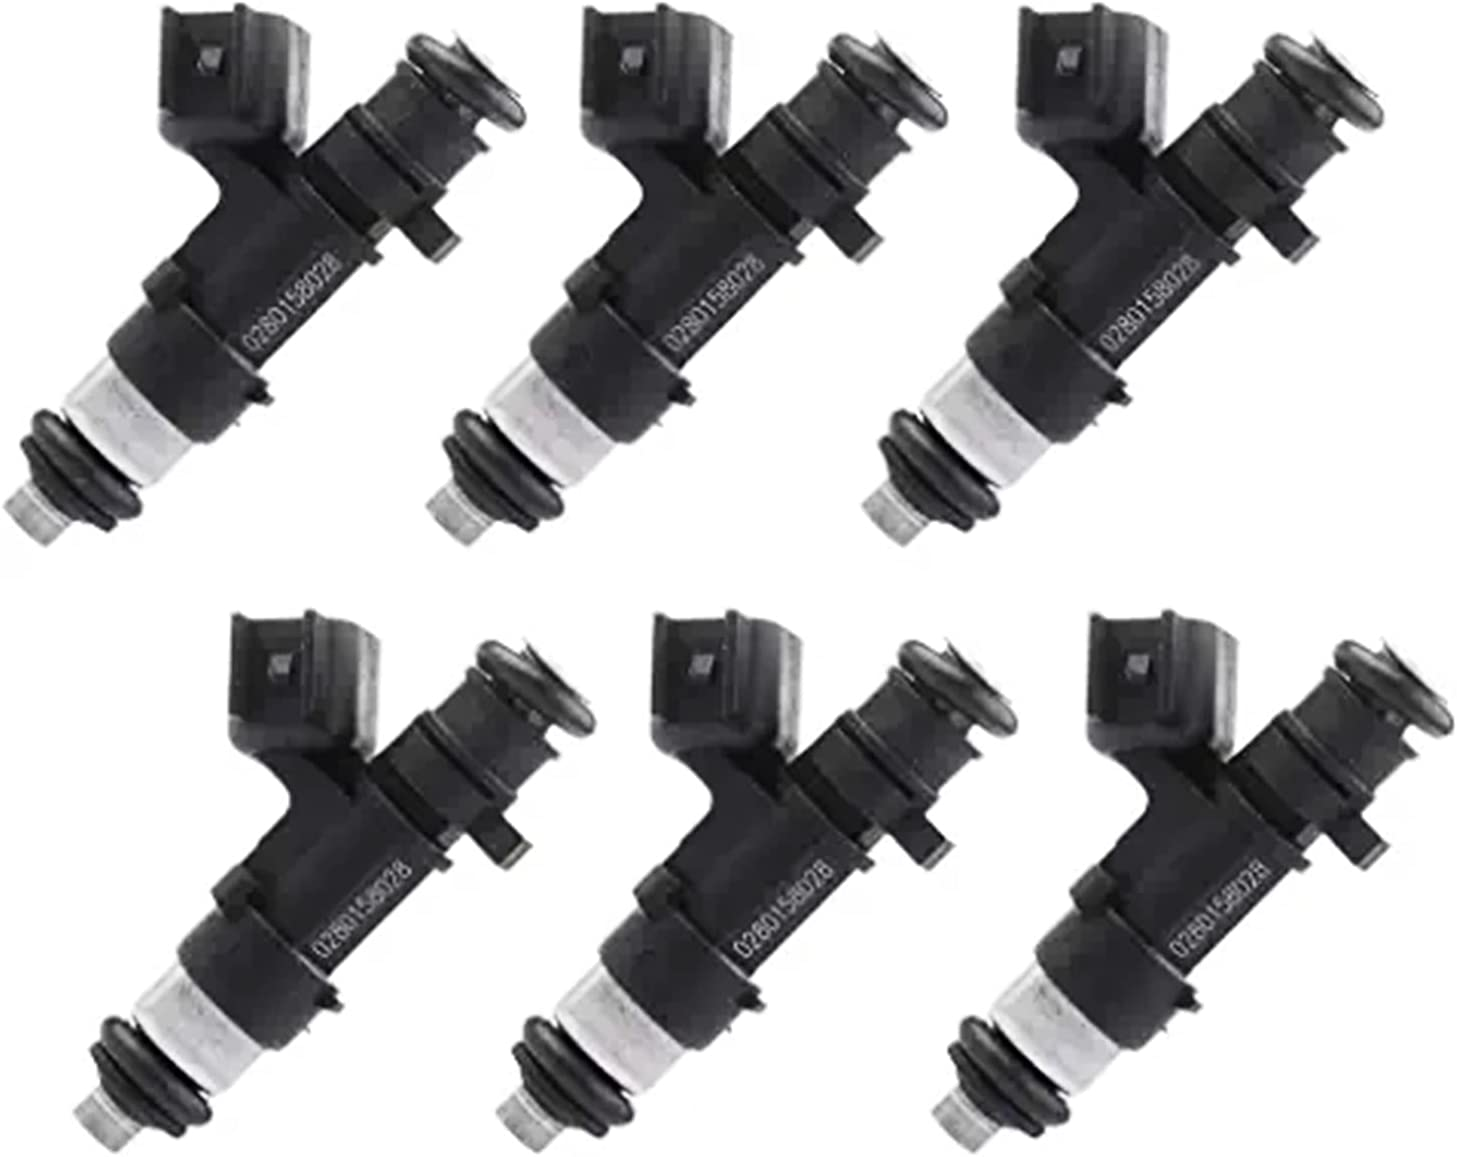 COPACHI 6PCS 0280158028 04591986AA Fuel Injector Fits For Dodge- Max 84% Quality inspection OFF